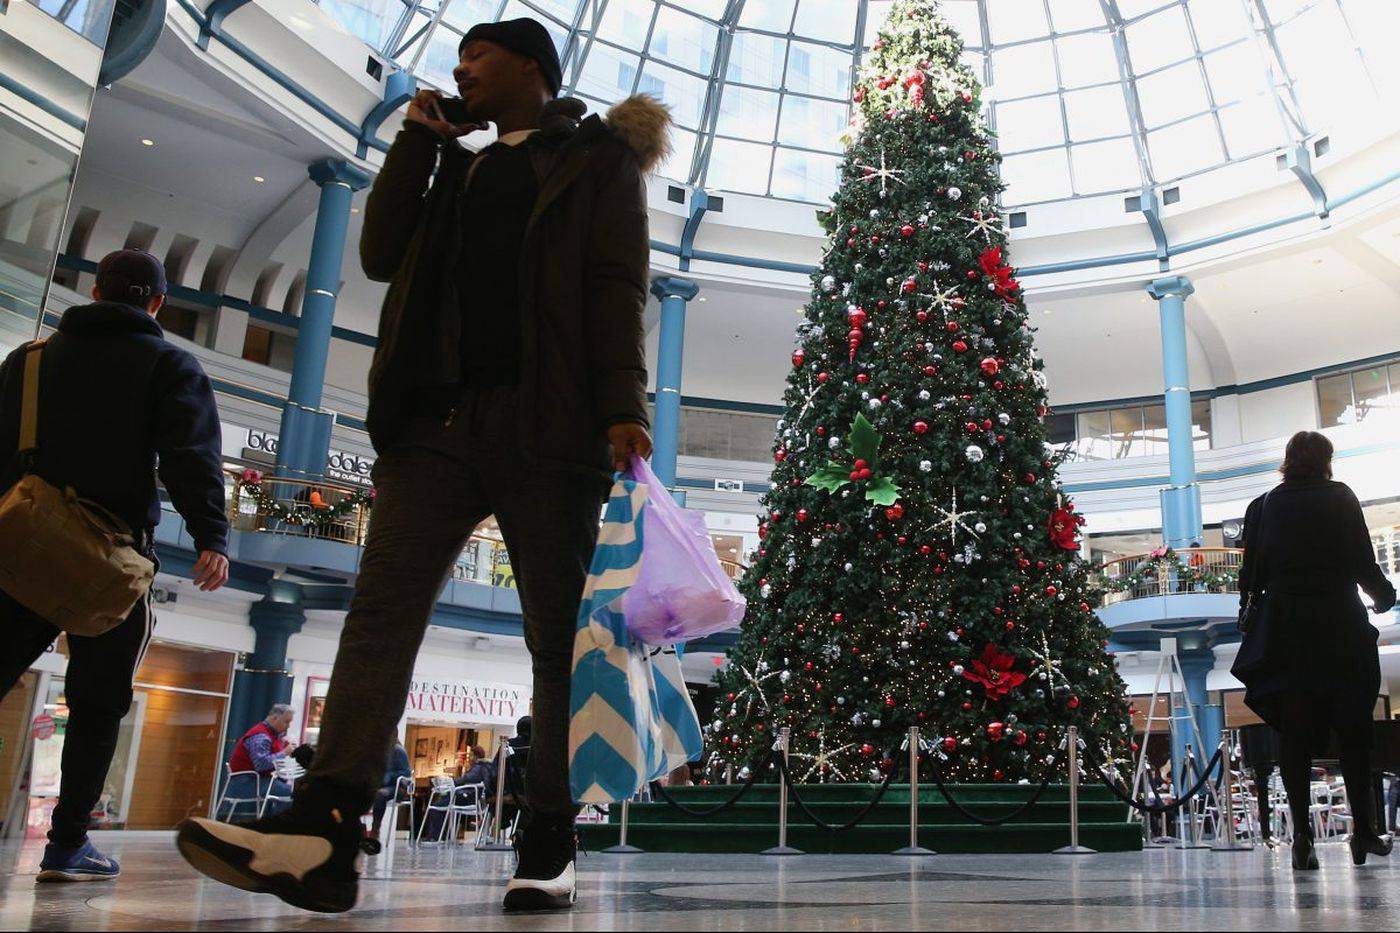 Giving experiences as holiday gifts: Many shoppers want memories, not trinkets